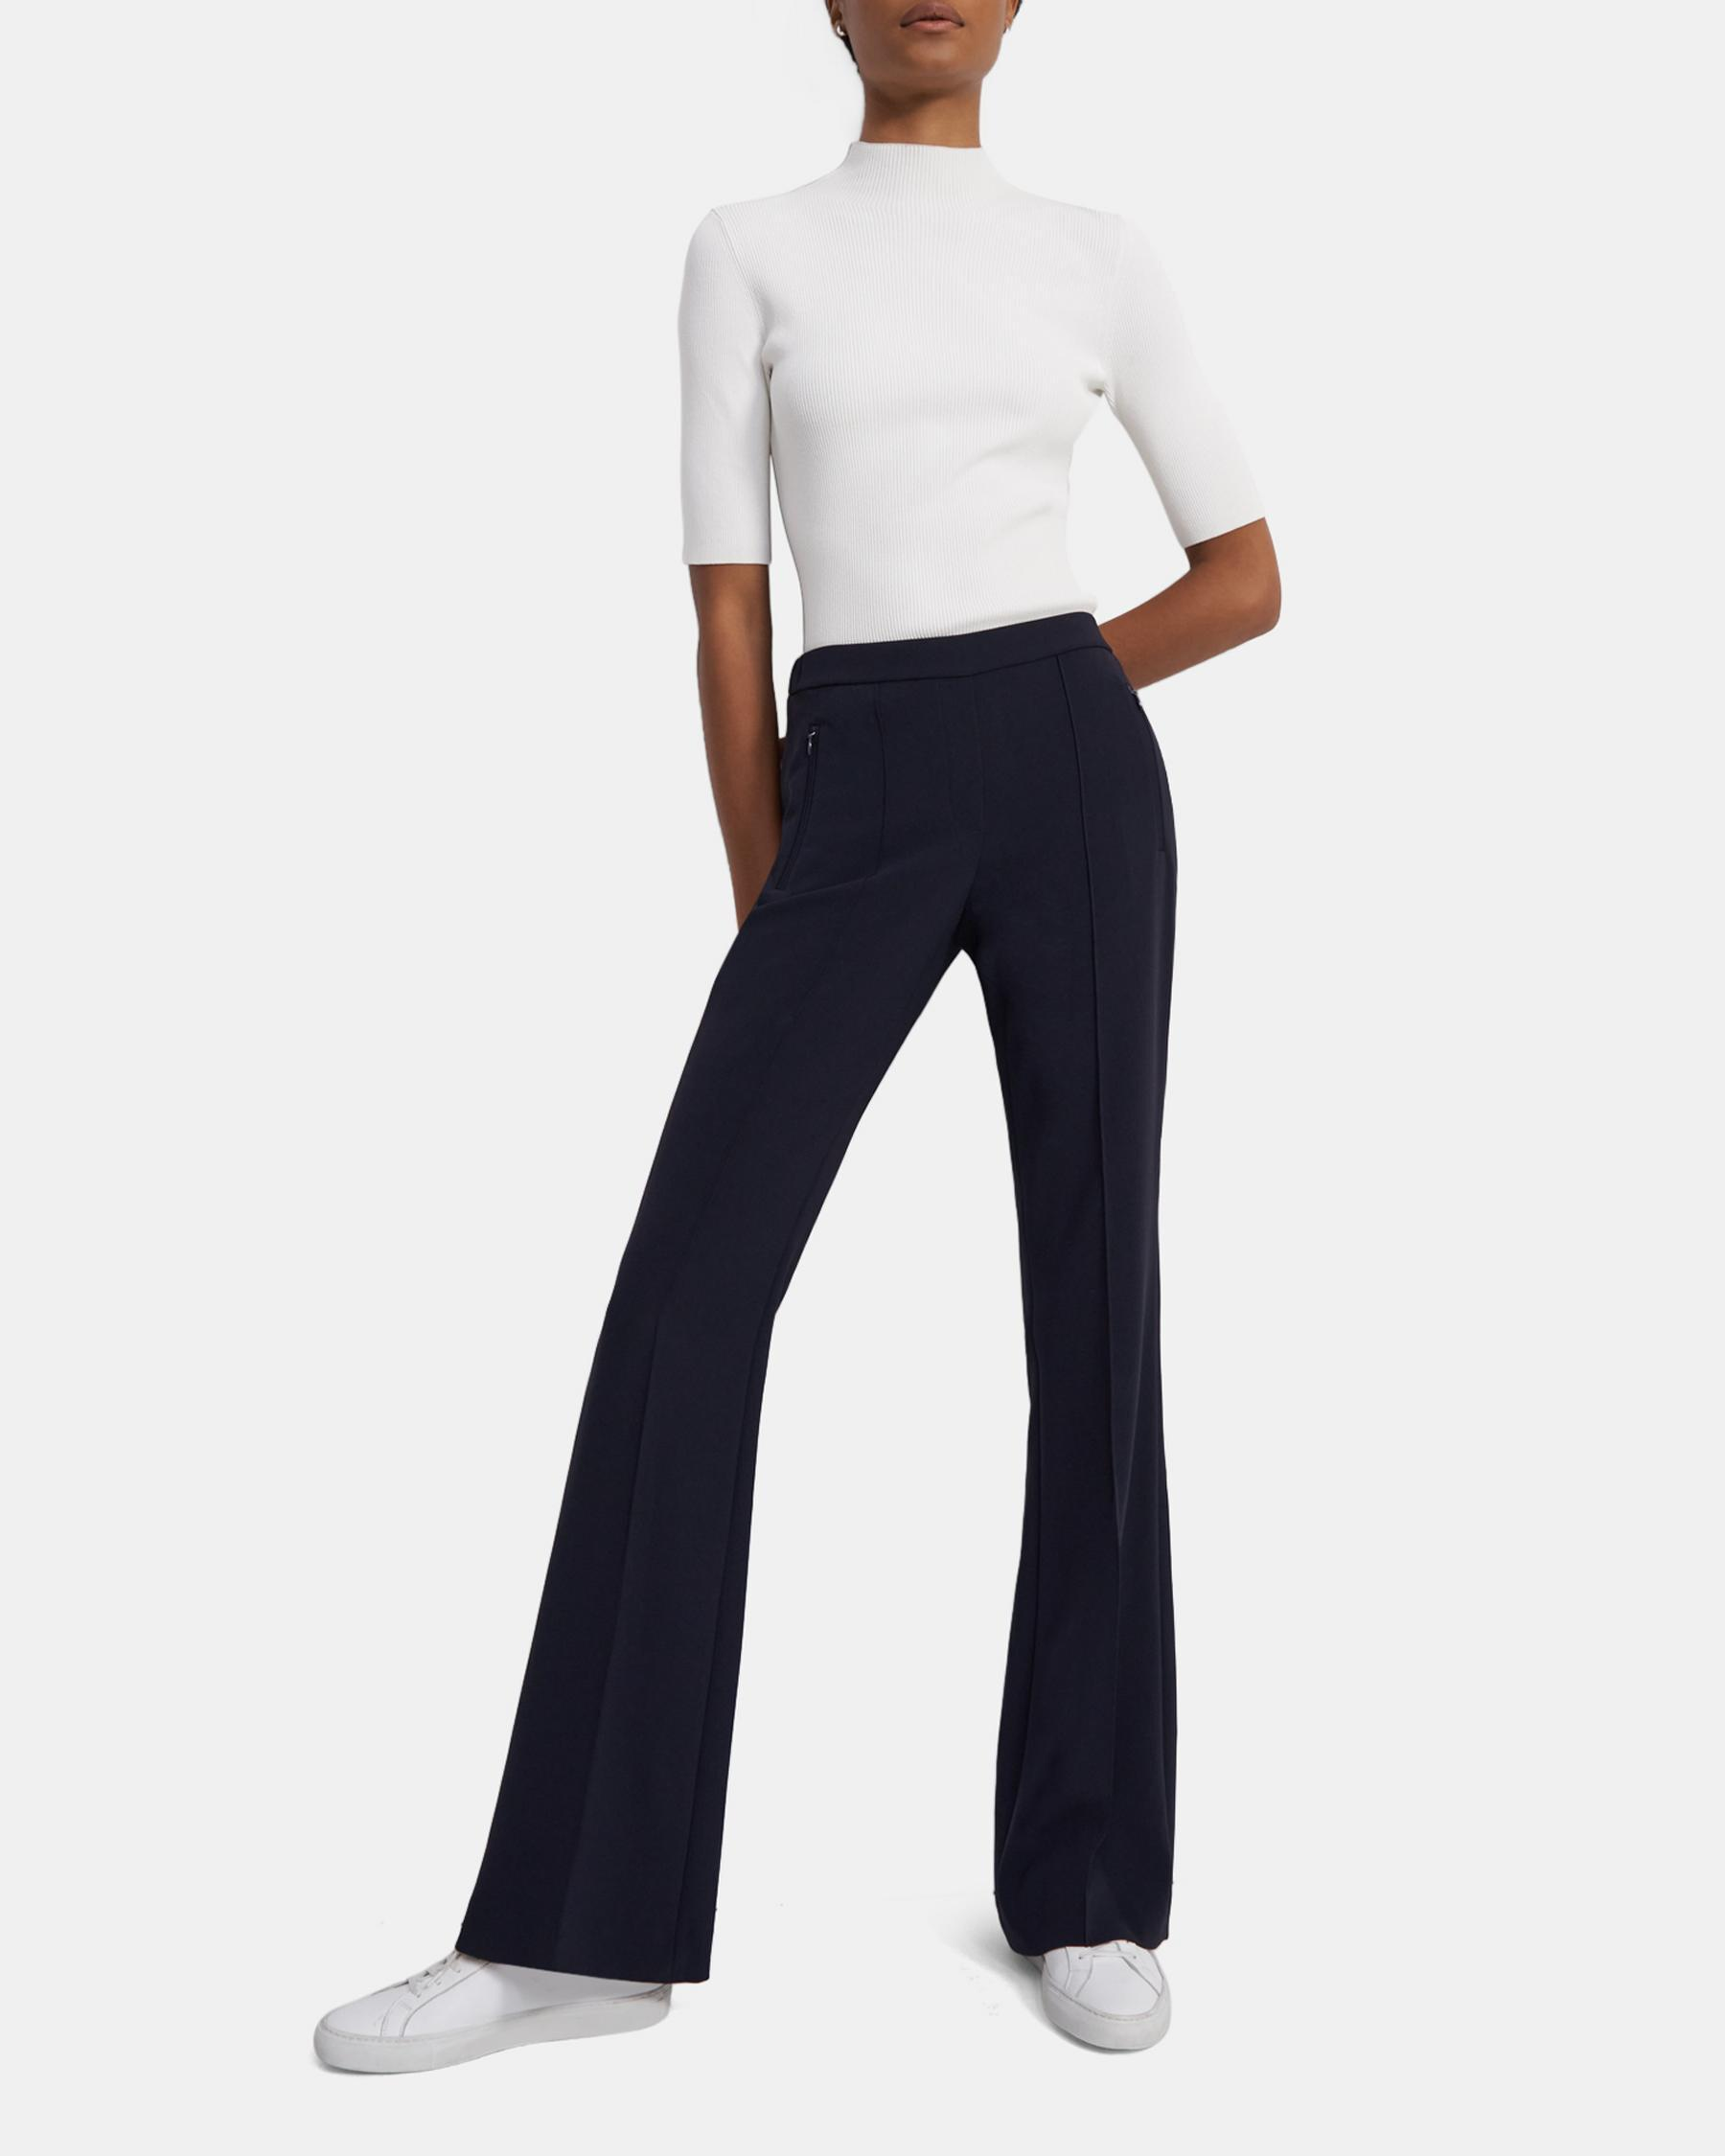 Demitria Pull-On Pant in Crepe